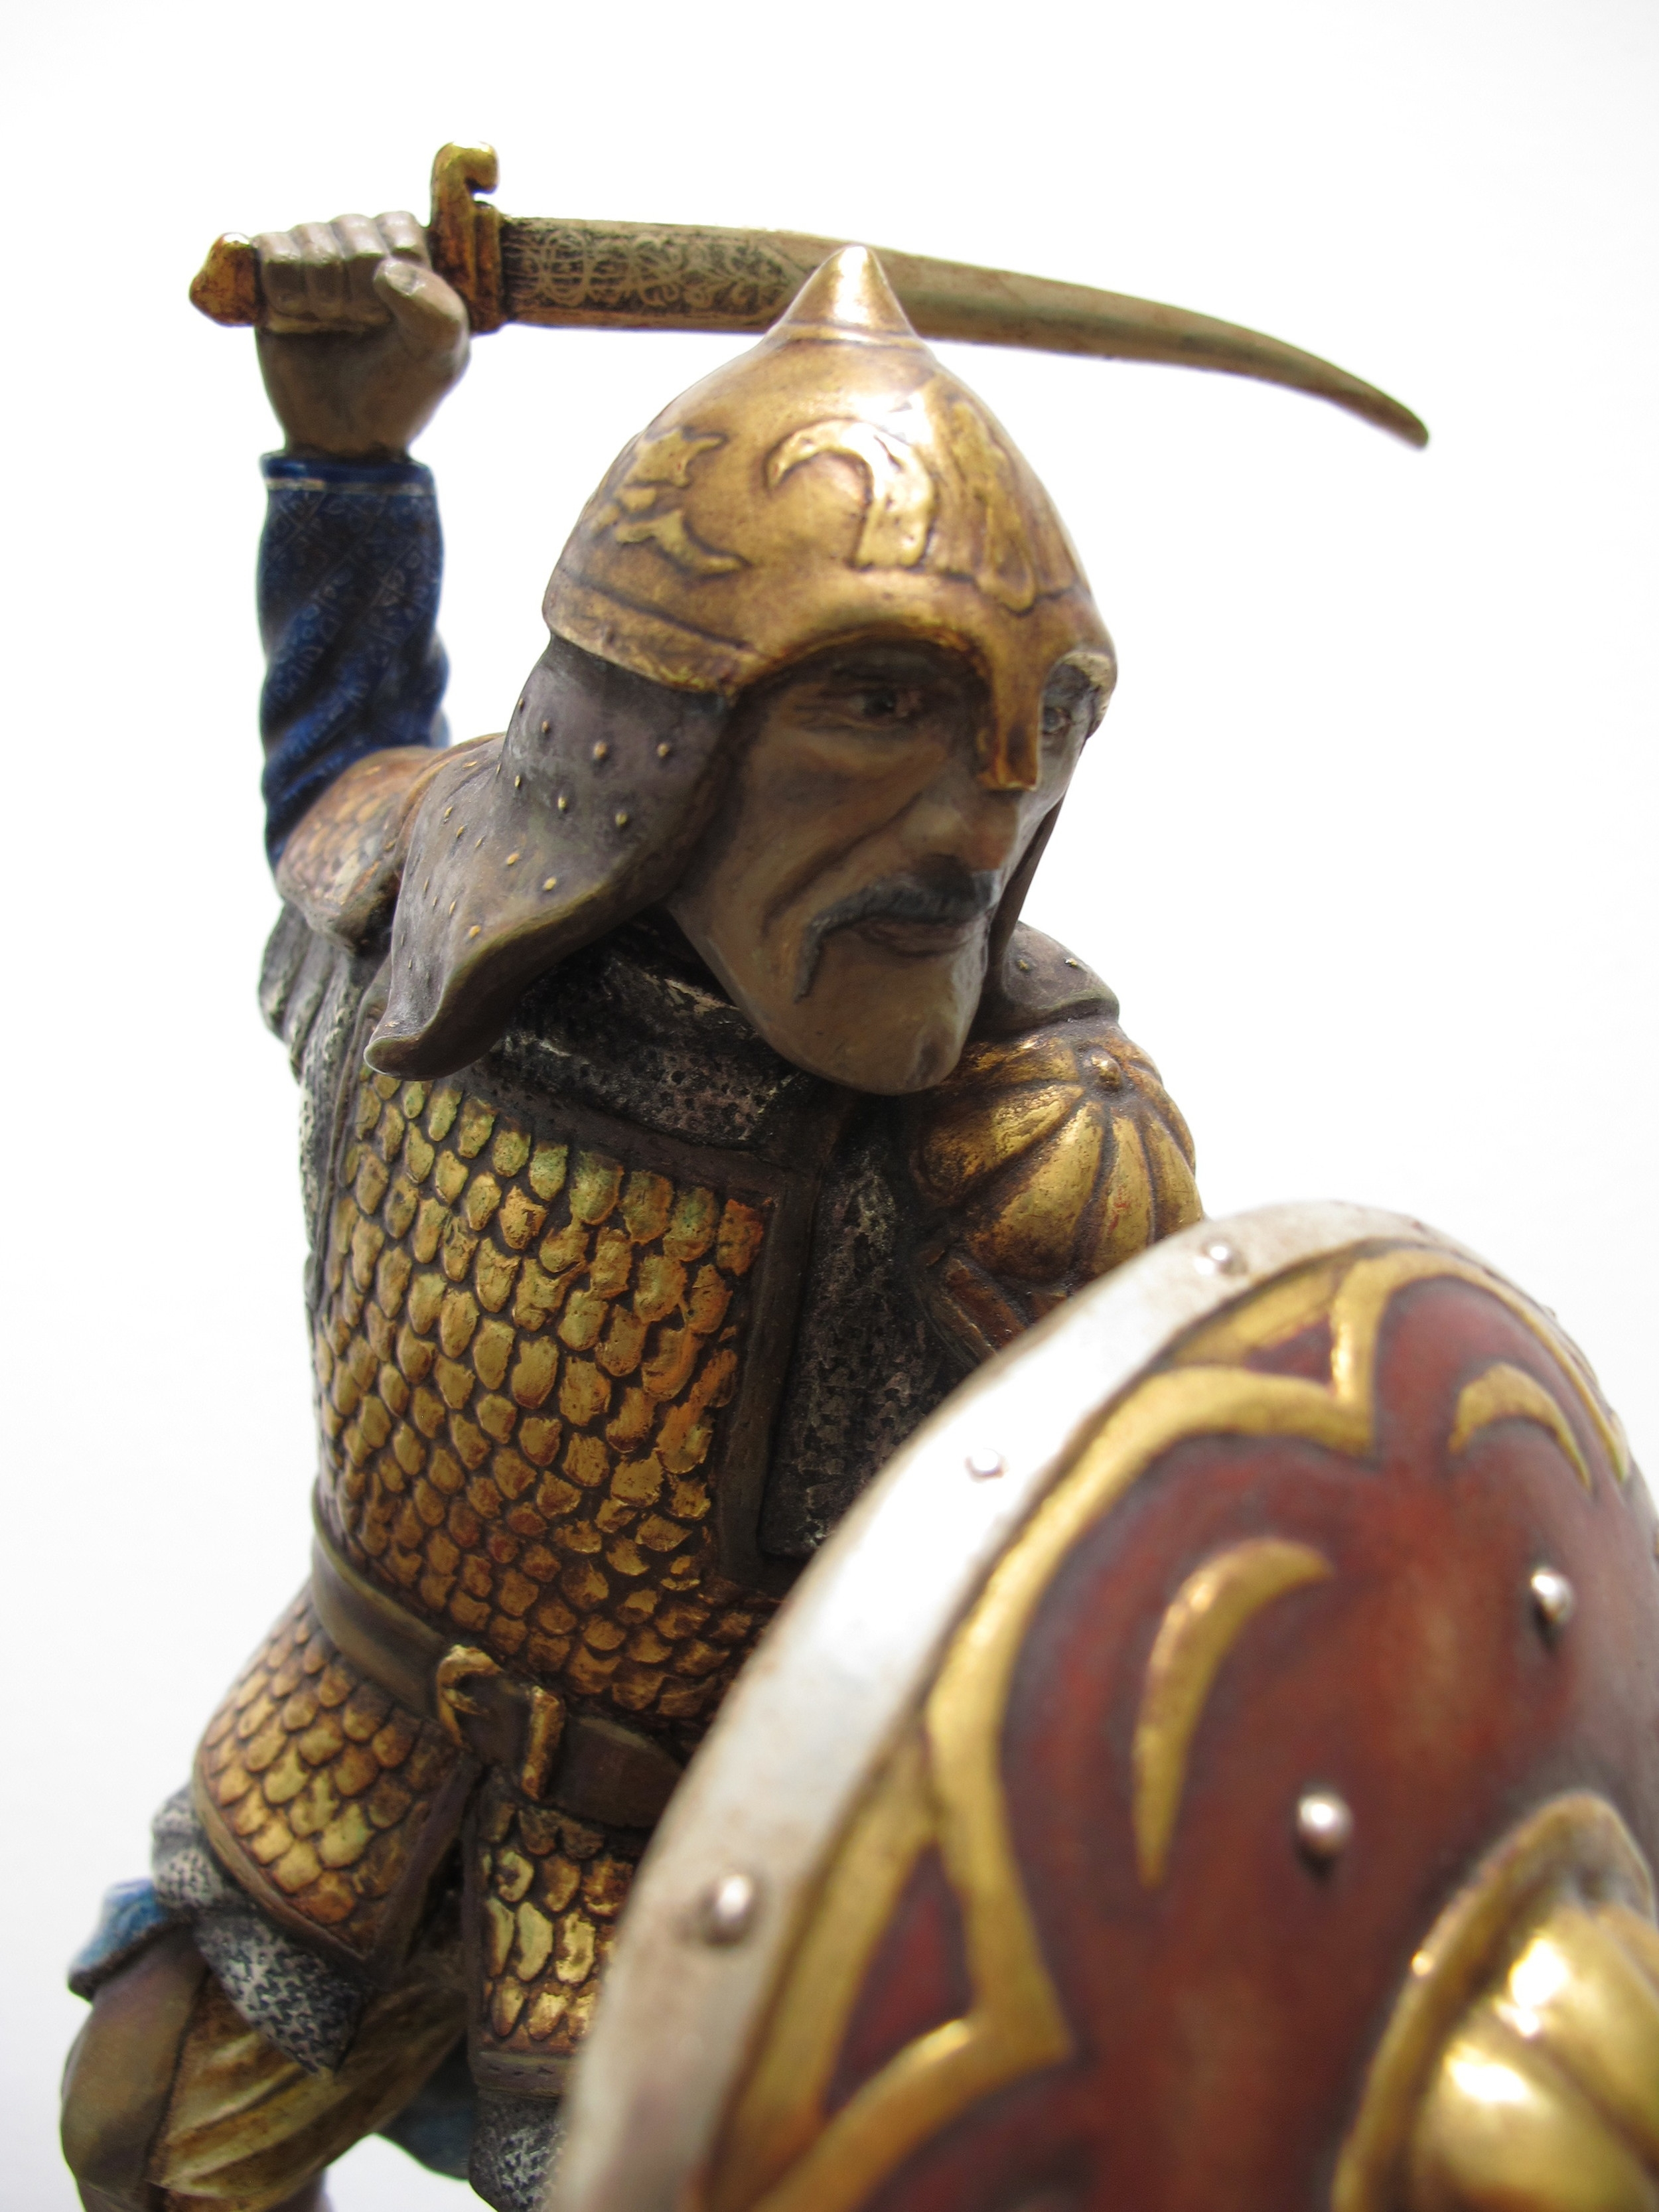 This Saracen figure, representing a saracen knight from the 13th century,is also carved from basswood. It is characterized by the fine surfacing of the coat and armor.